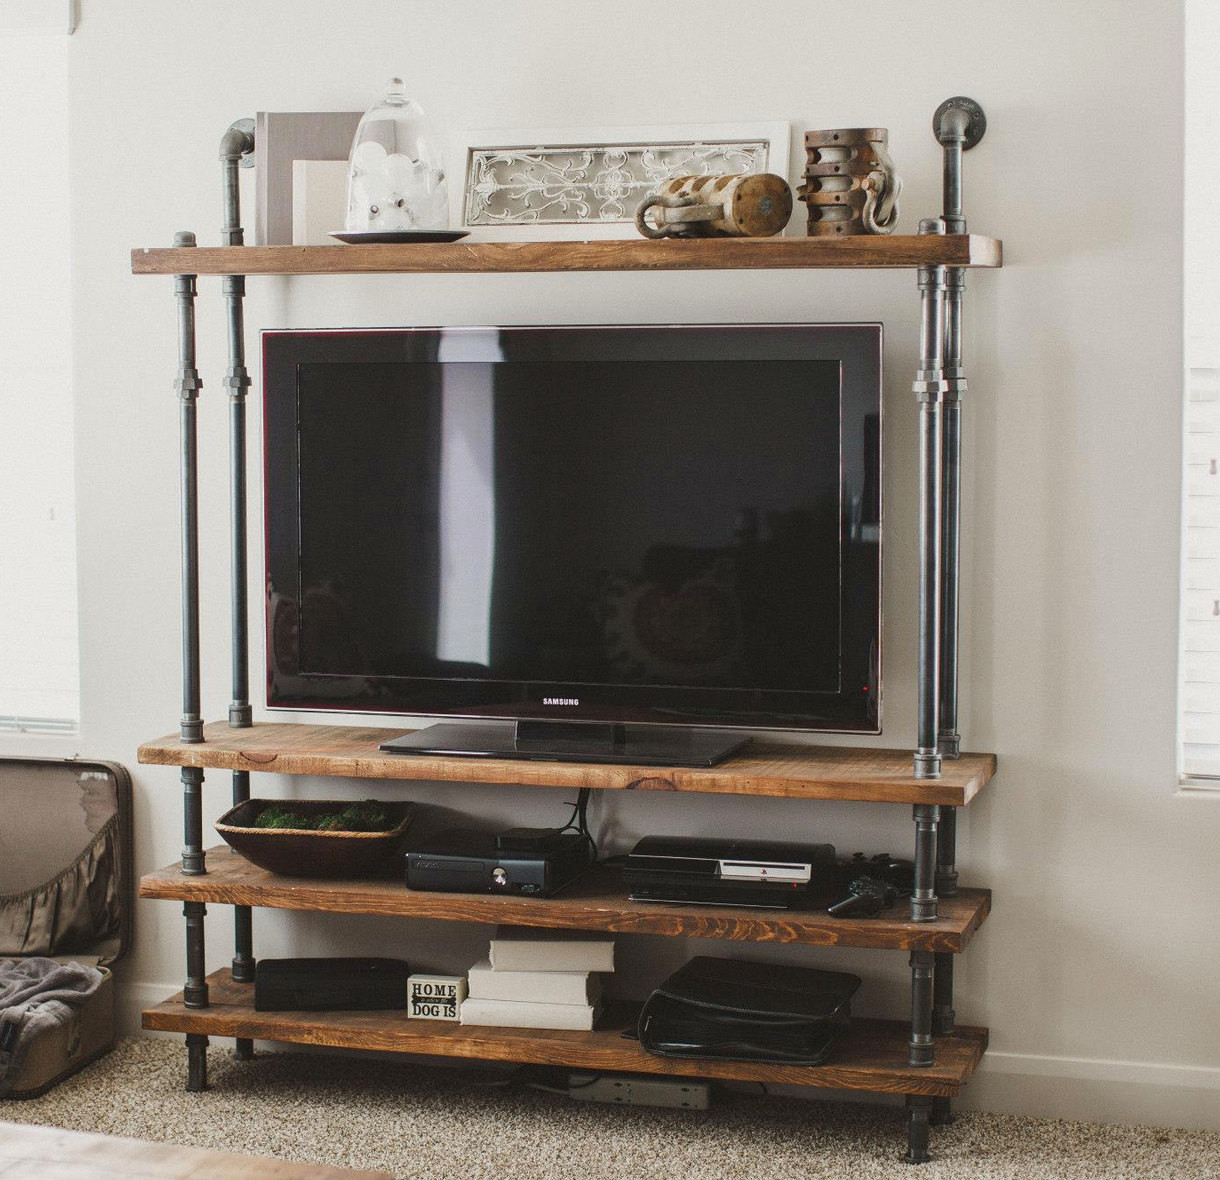 Best ideas about DIY Industrial Tv Stand . Save or Pin How to Choose a TV Stand Now.